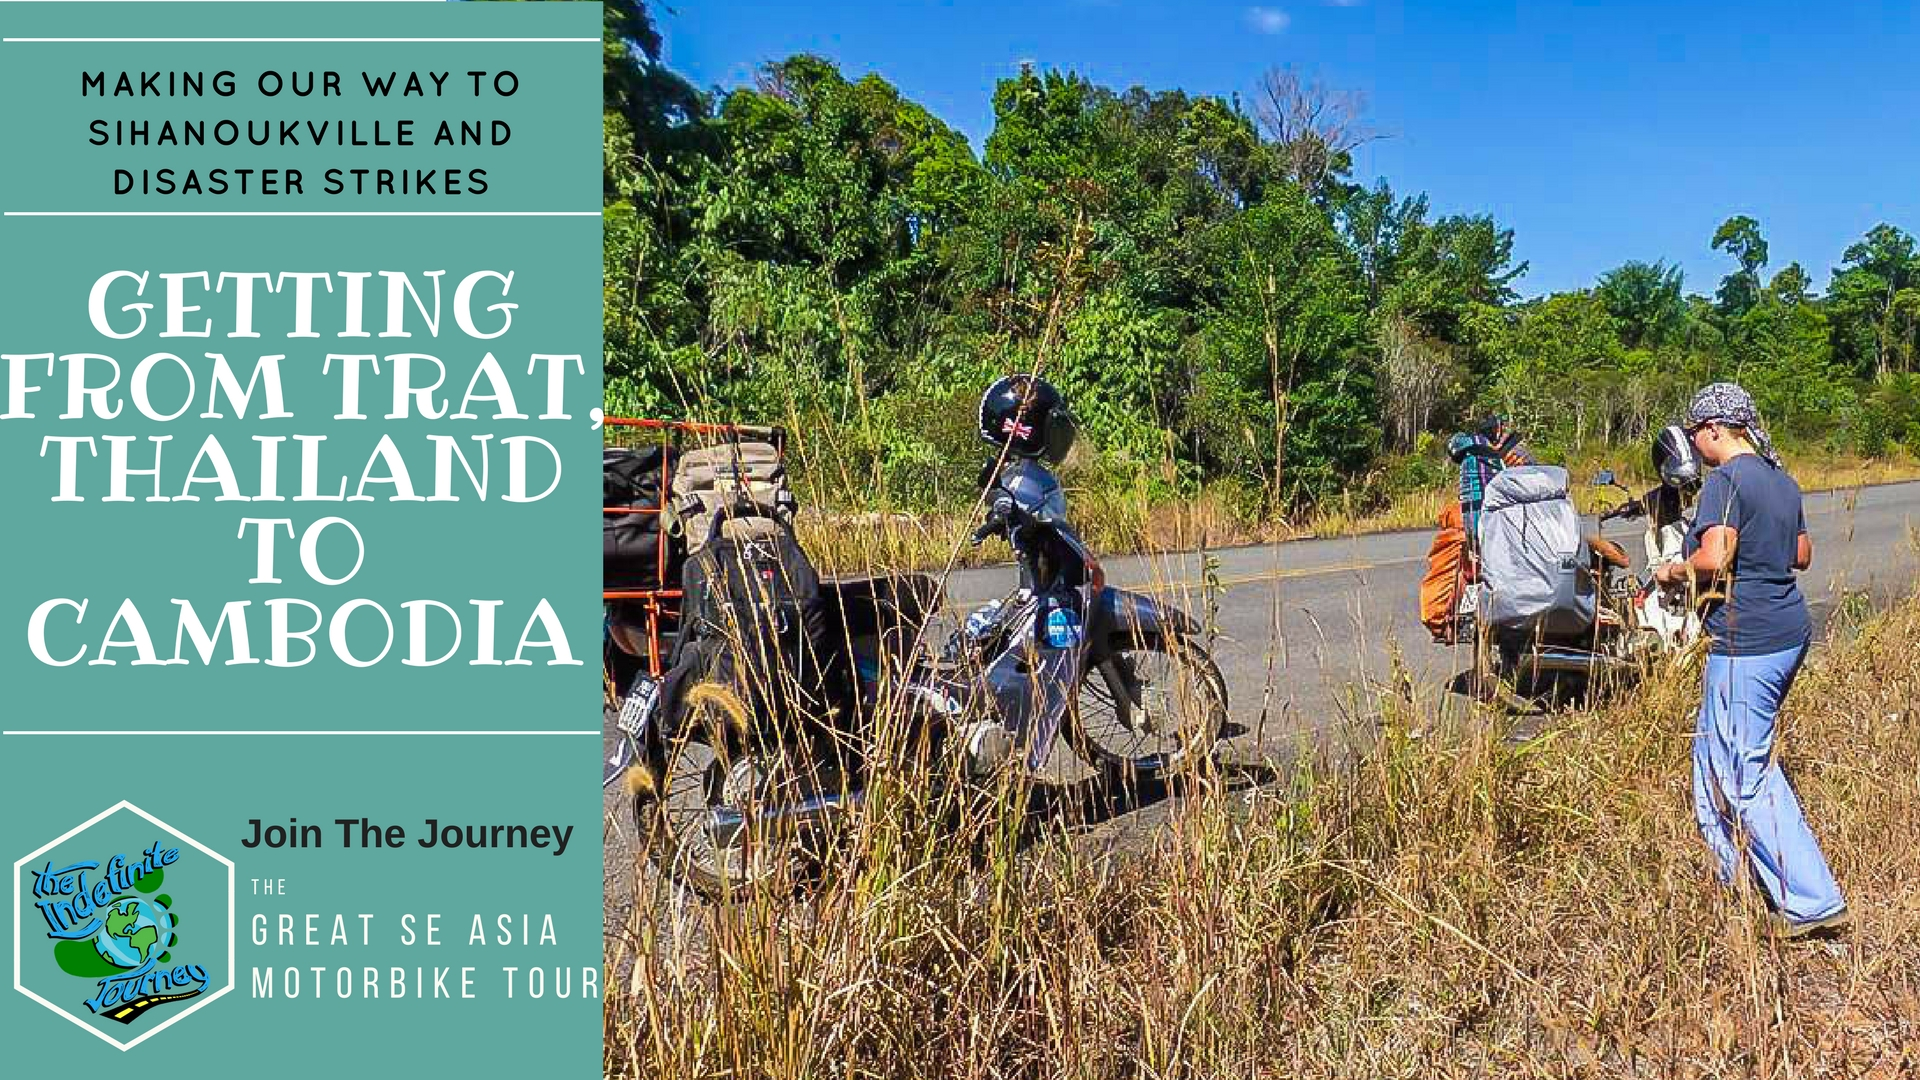 Getting from Trat, Thailand to Cambodia - Making our way to Sihanoukville and Disaster Strikes